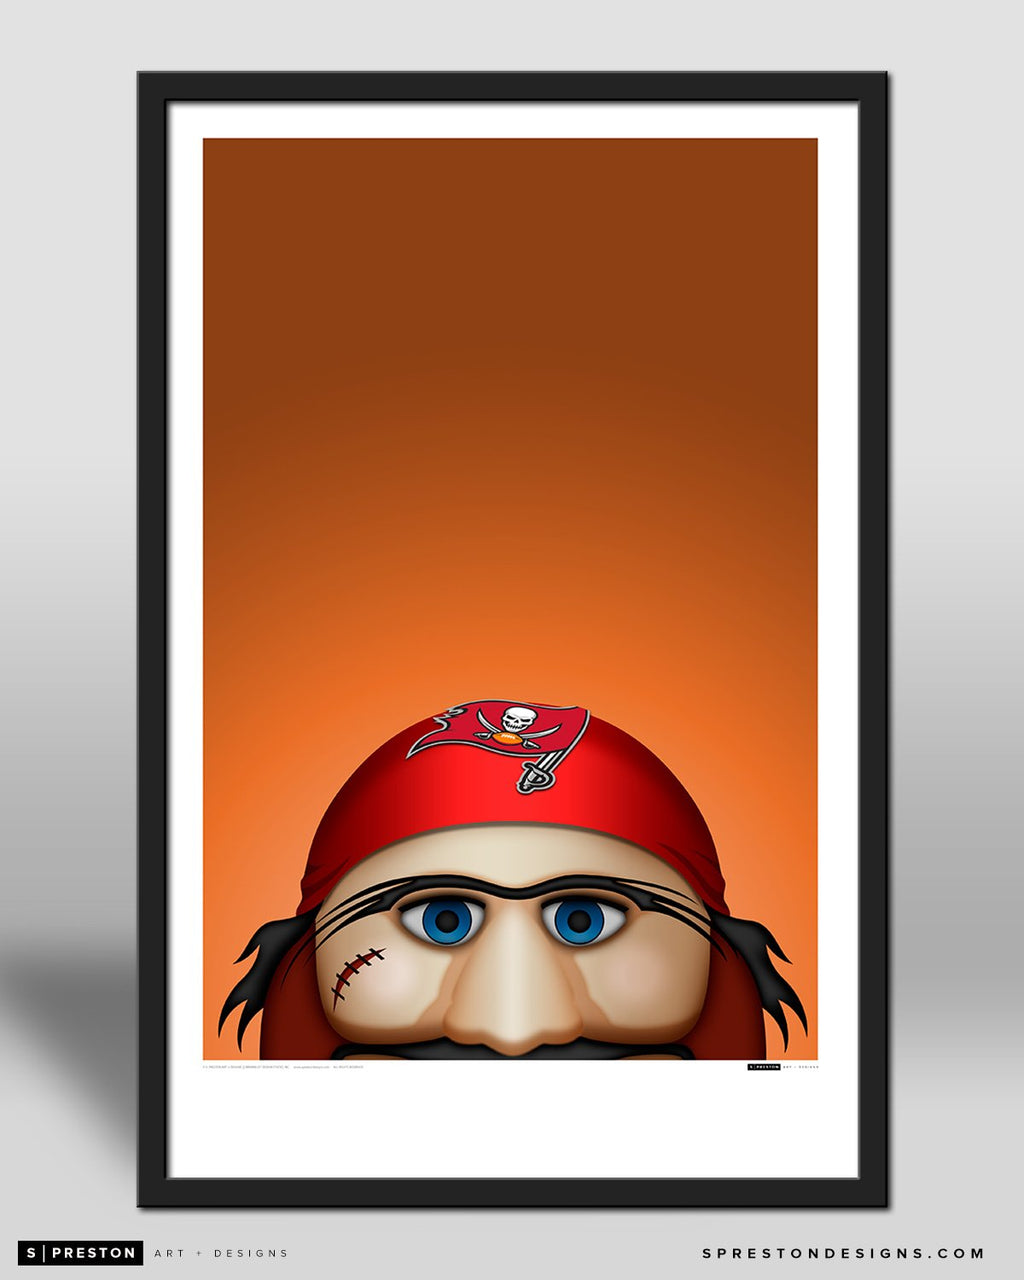 Minimalist Captain Fear by S. Preston - official mascot of the Tampa Bay Buccaneers